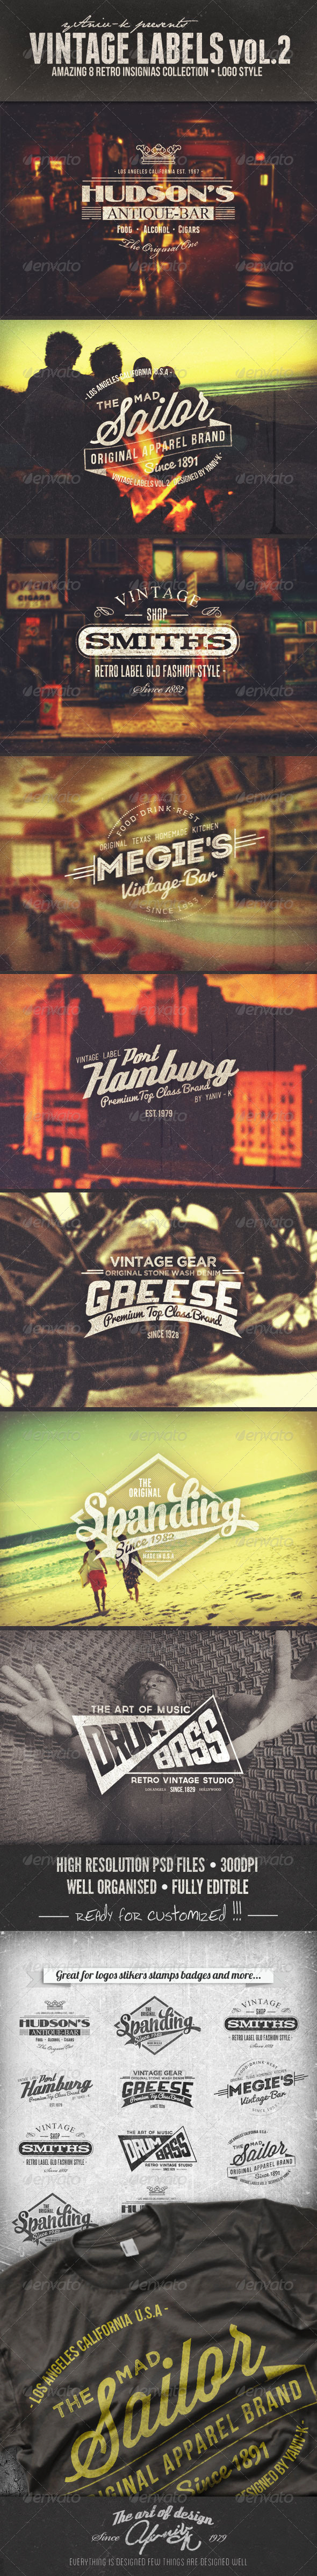 Vintage Labels Vol.2 - Badges & Stickers Web Elements